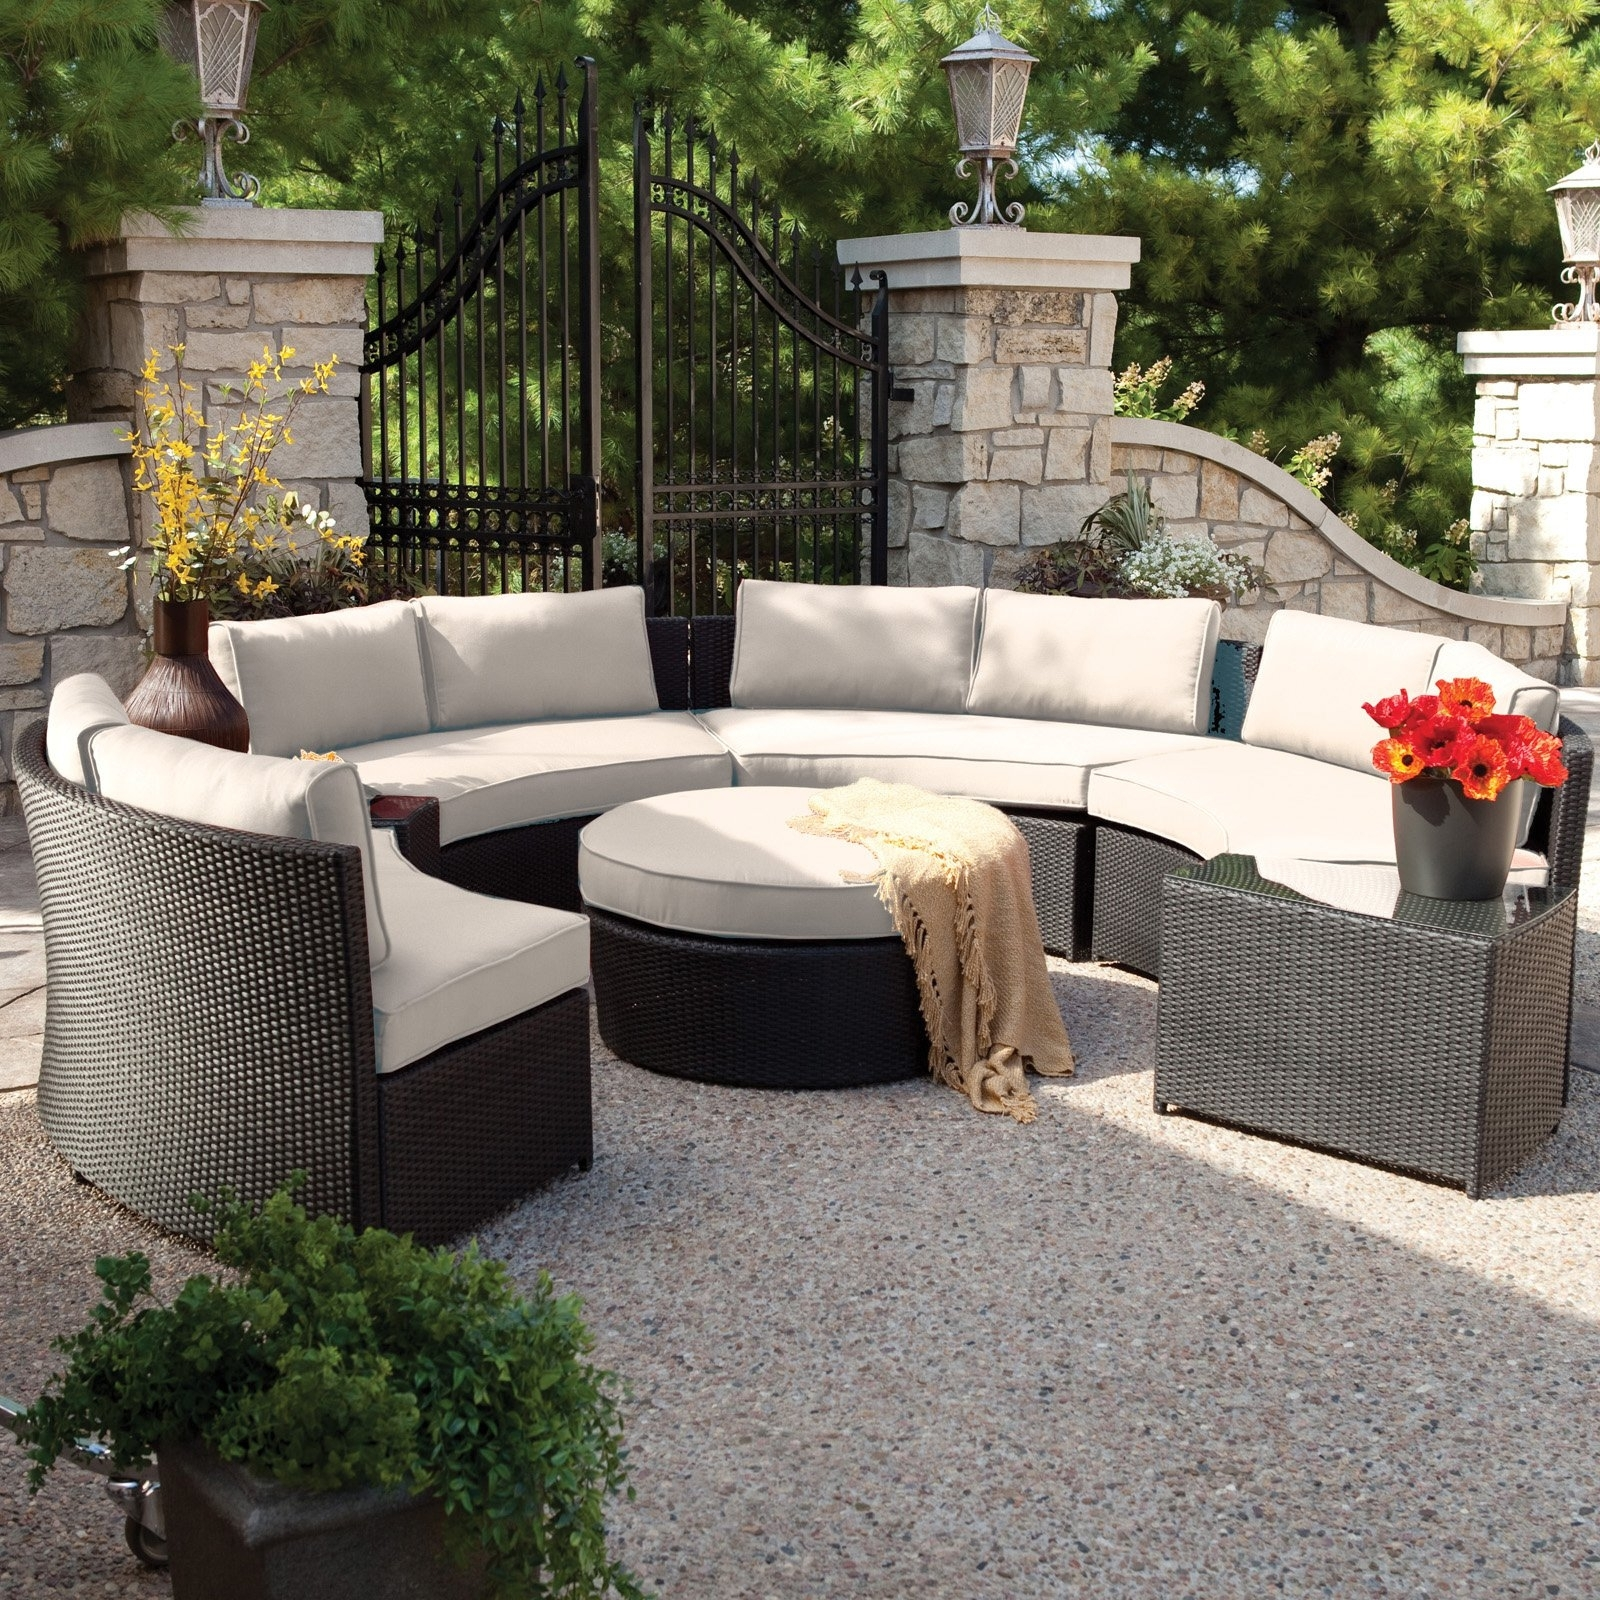 Most Popular Belham Living Meridian Round Outdoor Wicker Patio Furniture Set With For Round Patio Conversation Sets (View 2 of 15)